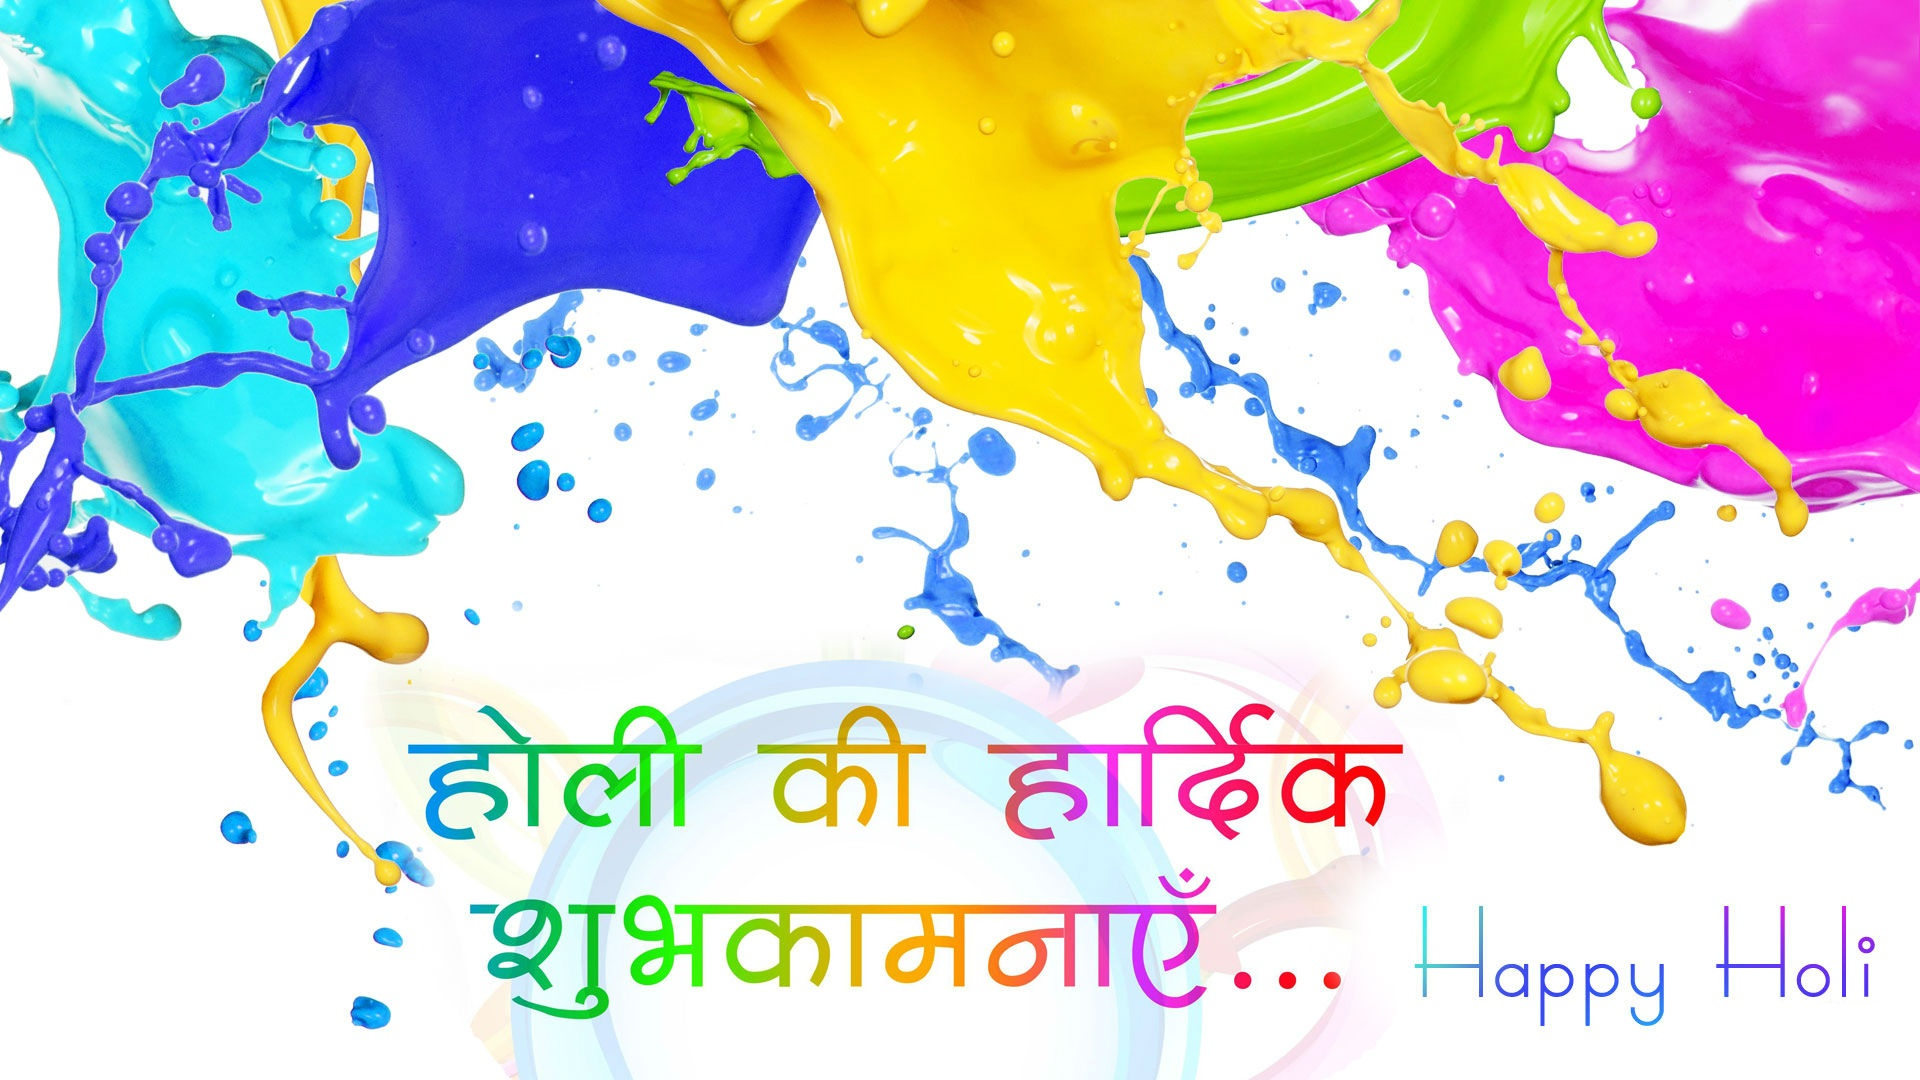 Holi Images For Whatsapp Dp Profile Wallpapers Free Download